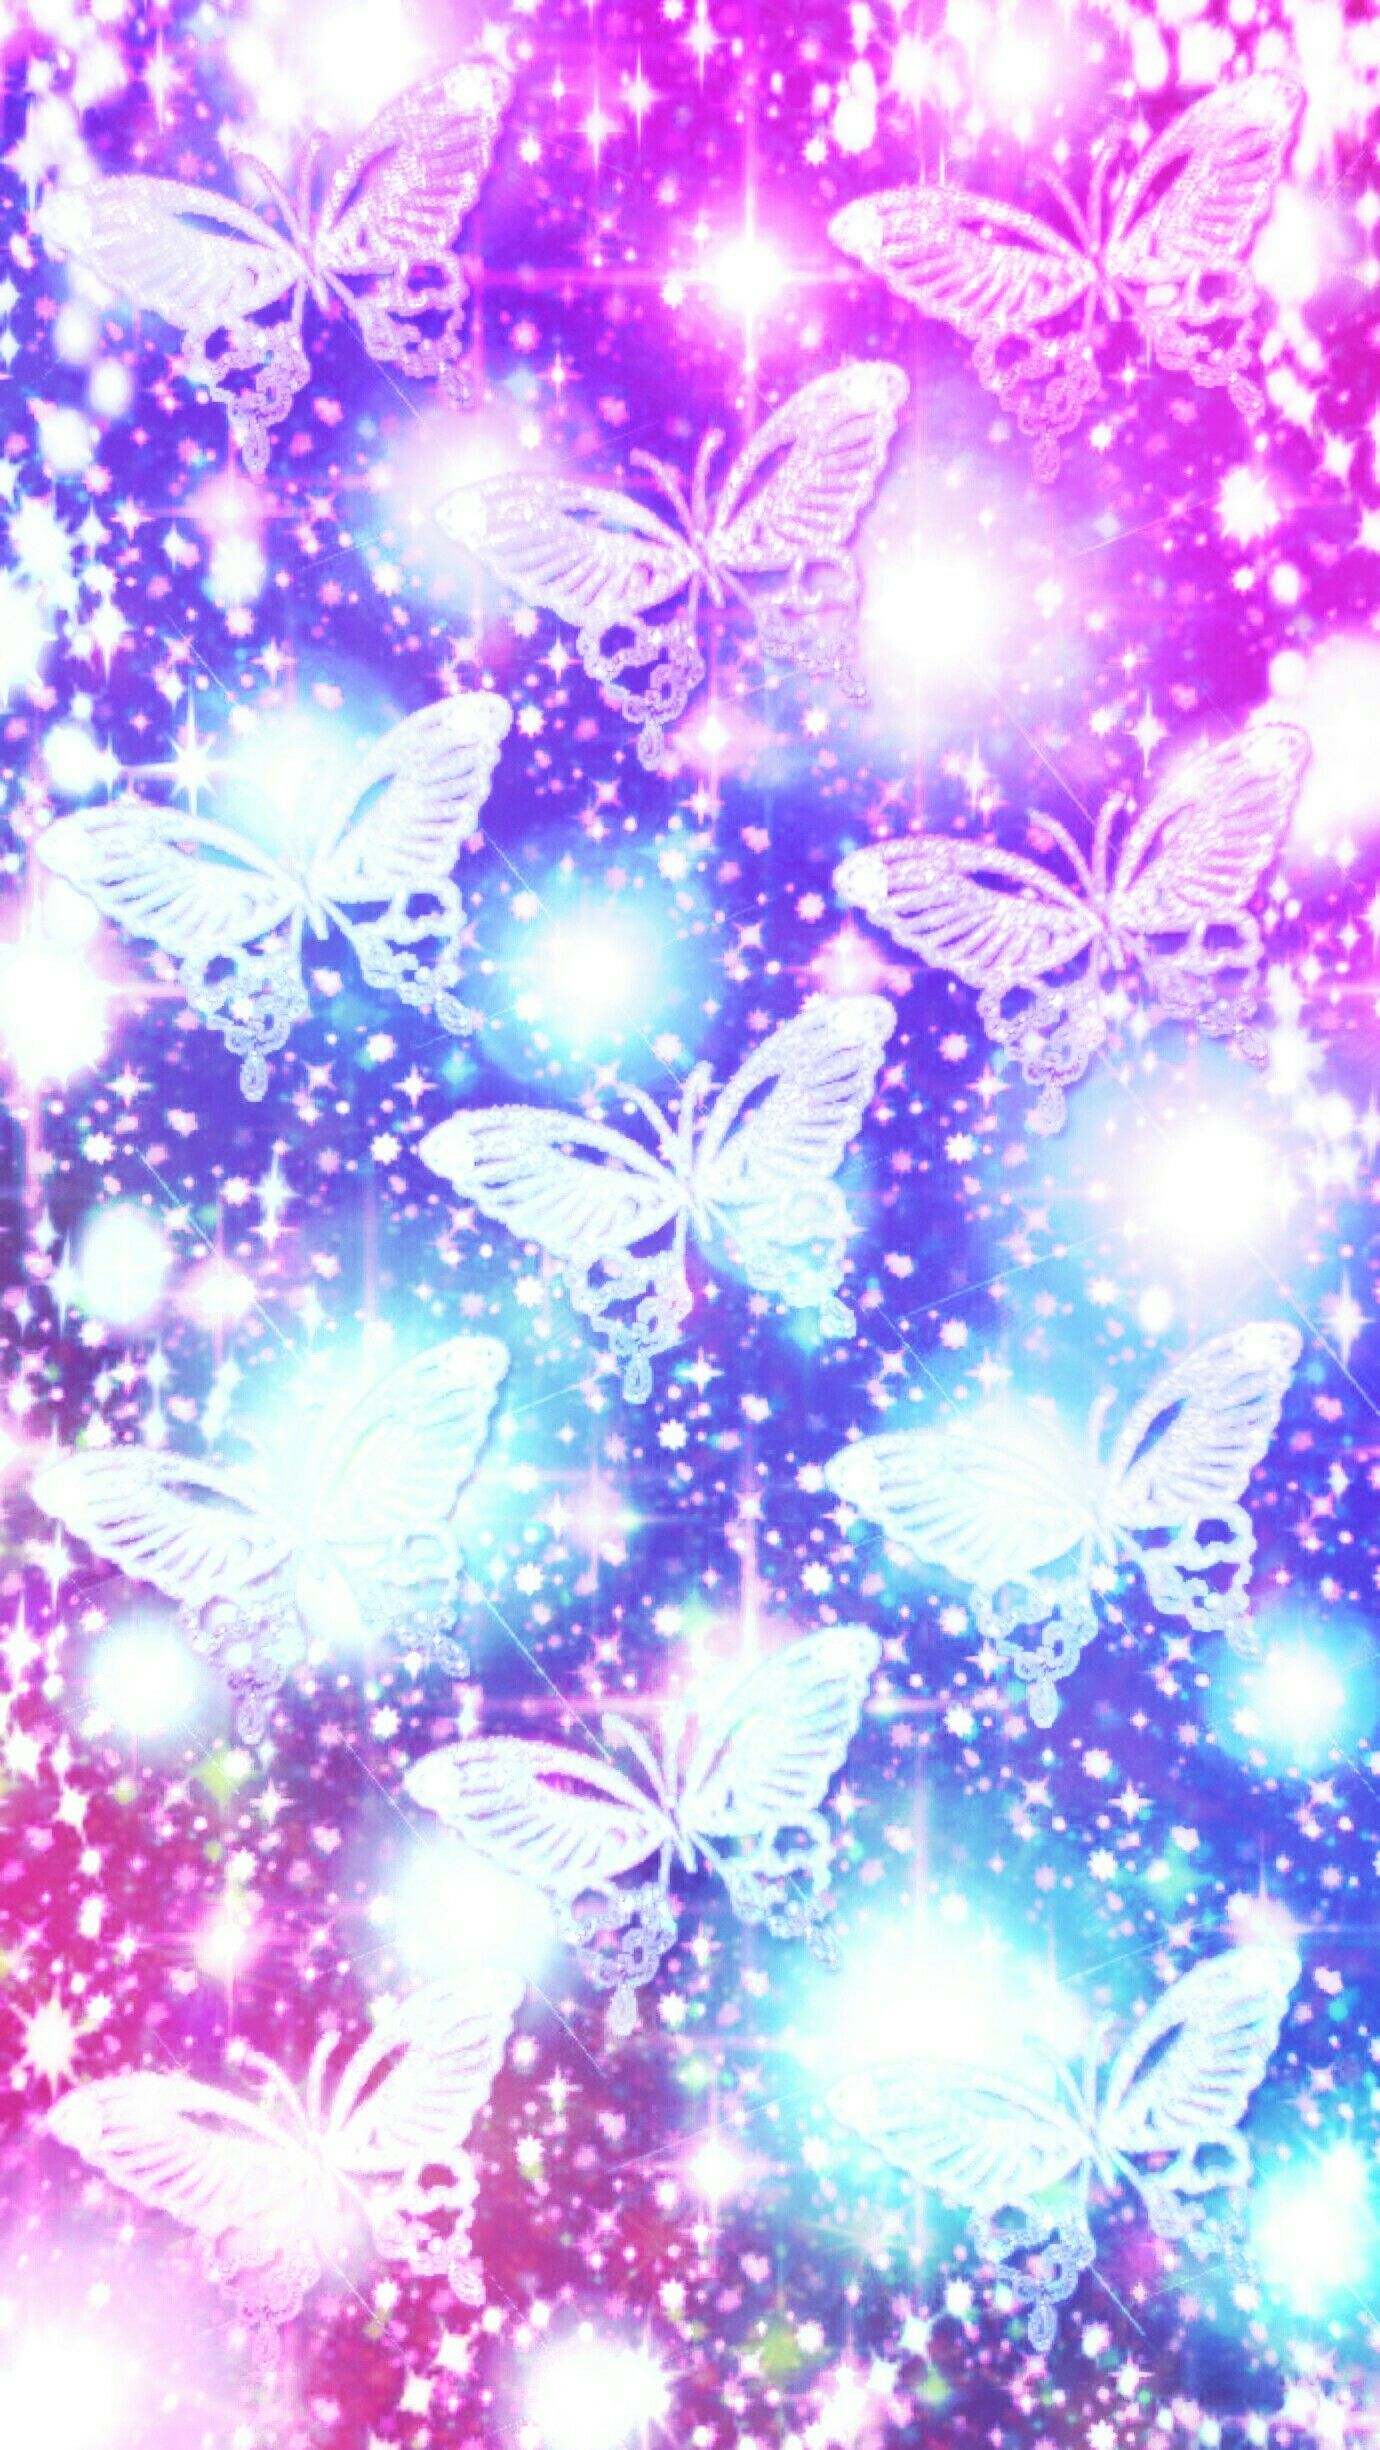 Glittery butterflies (With images) | Butterfly wallpaper ...